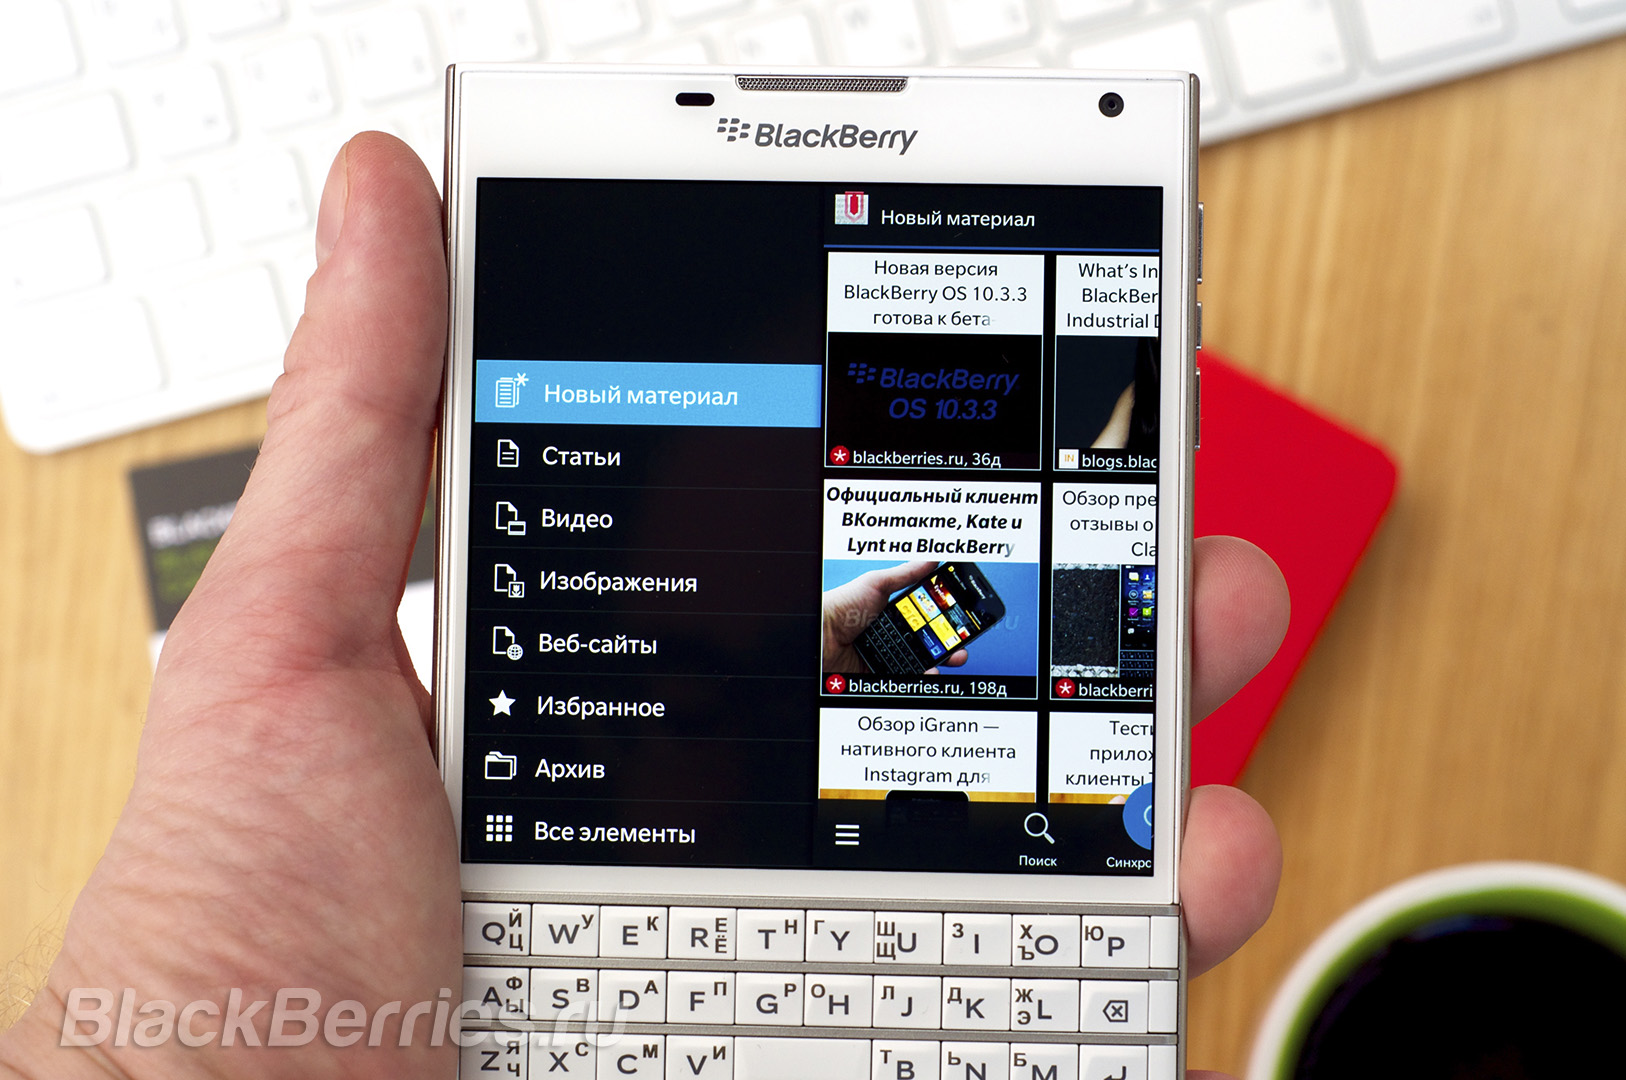 BlackBerry-Passport-Apps-31-07-16